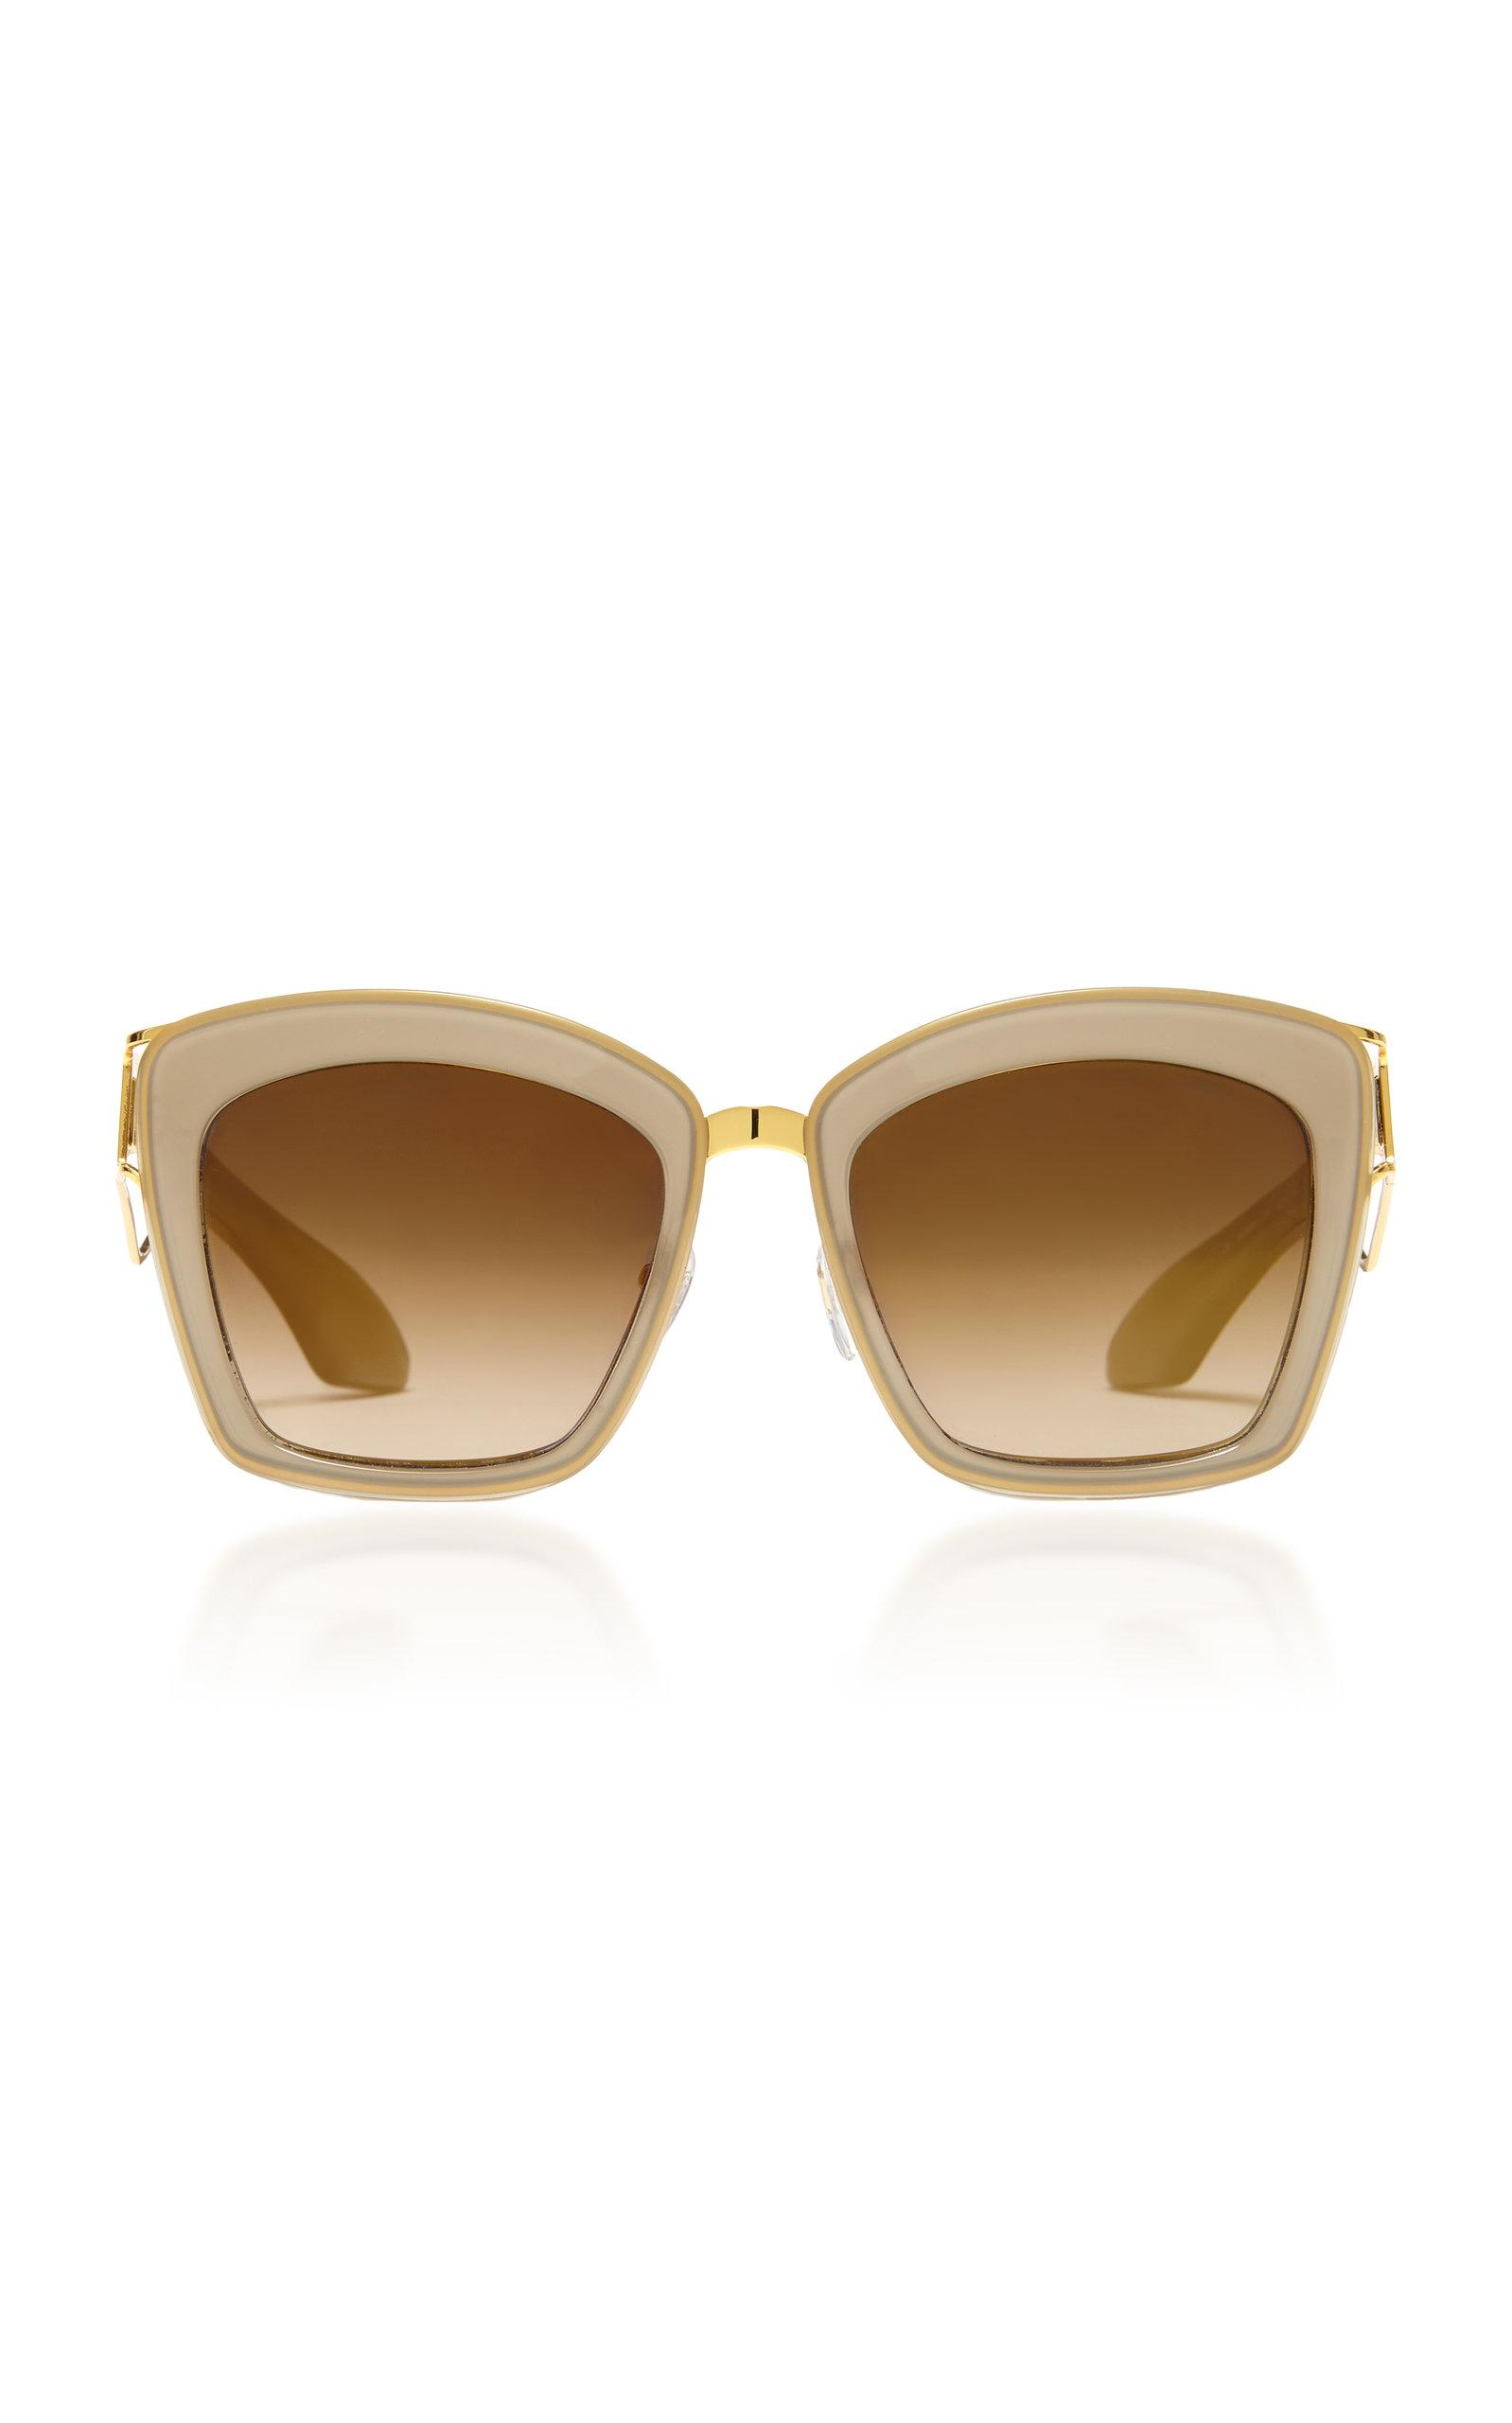 Philippe Chevallier Mask Square Frame Sunglasses In Green